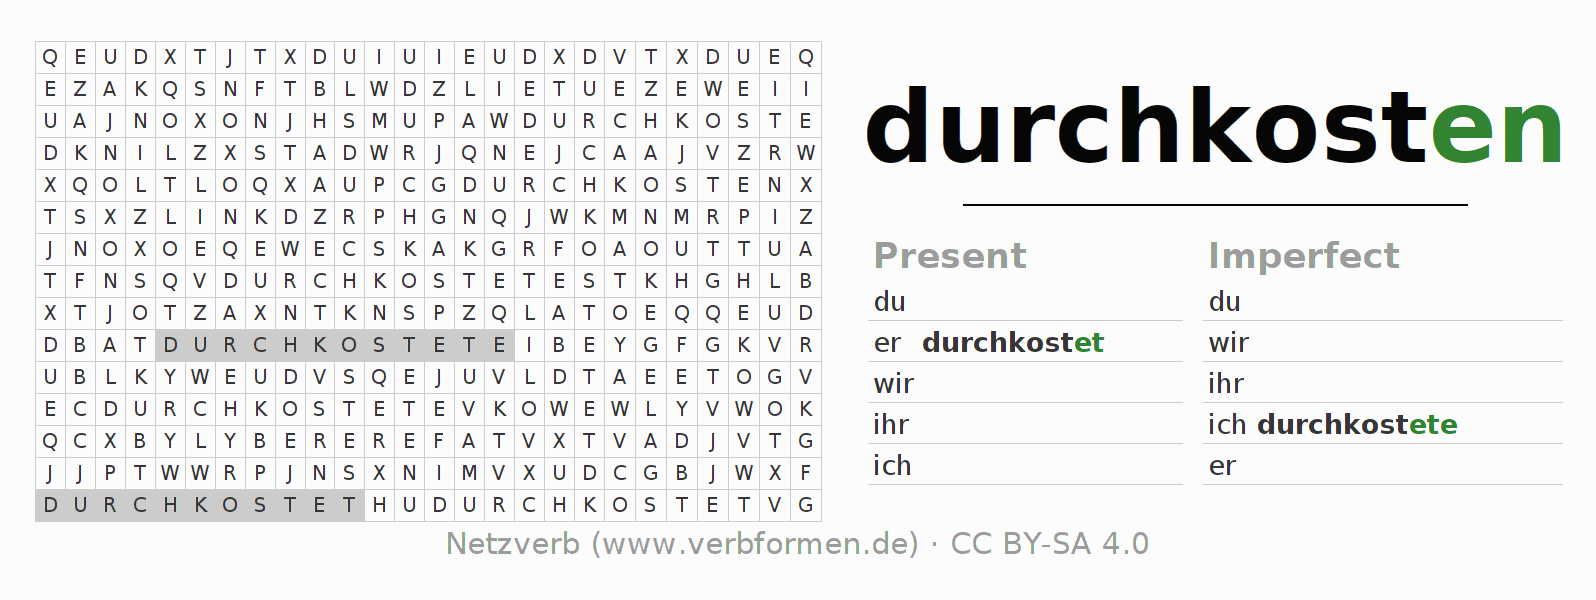 Word search puzzle for the conjugation of the verb durchkosten